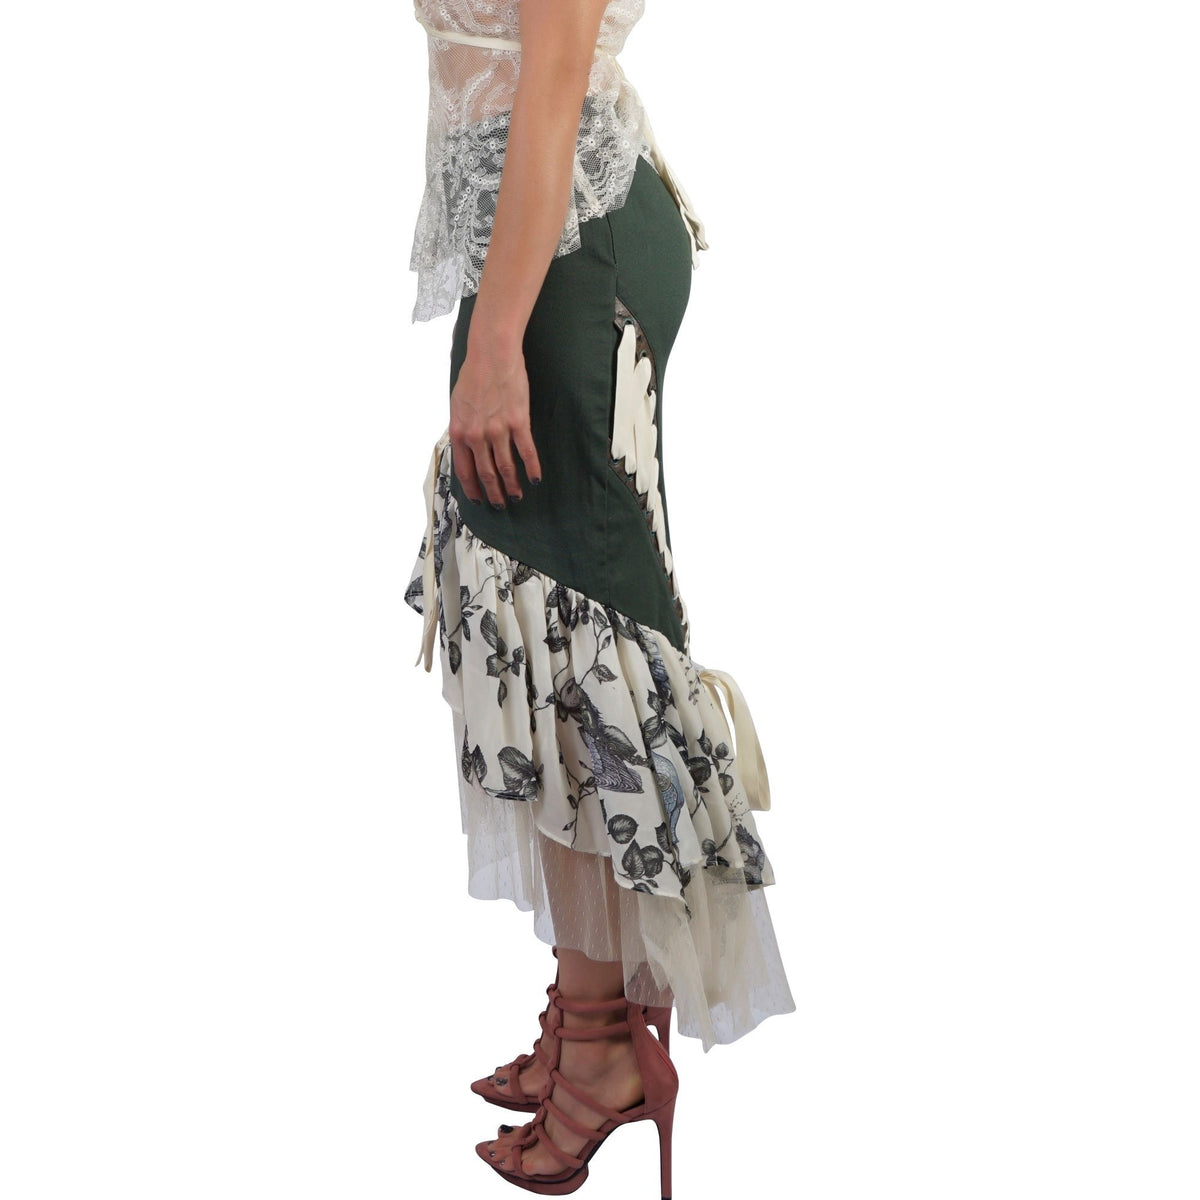 Lip Service Ladies Step In Time Steampunk Lace Up Fringe Skirt